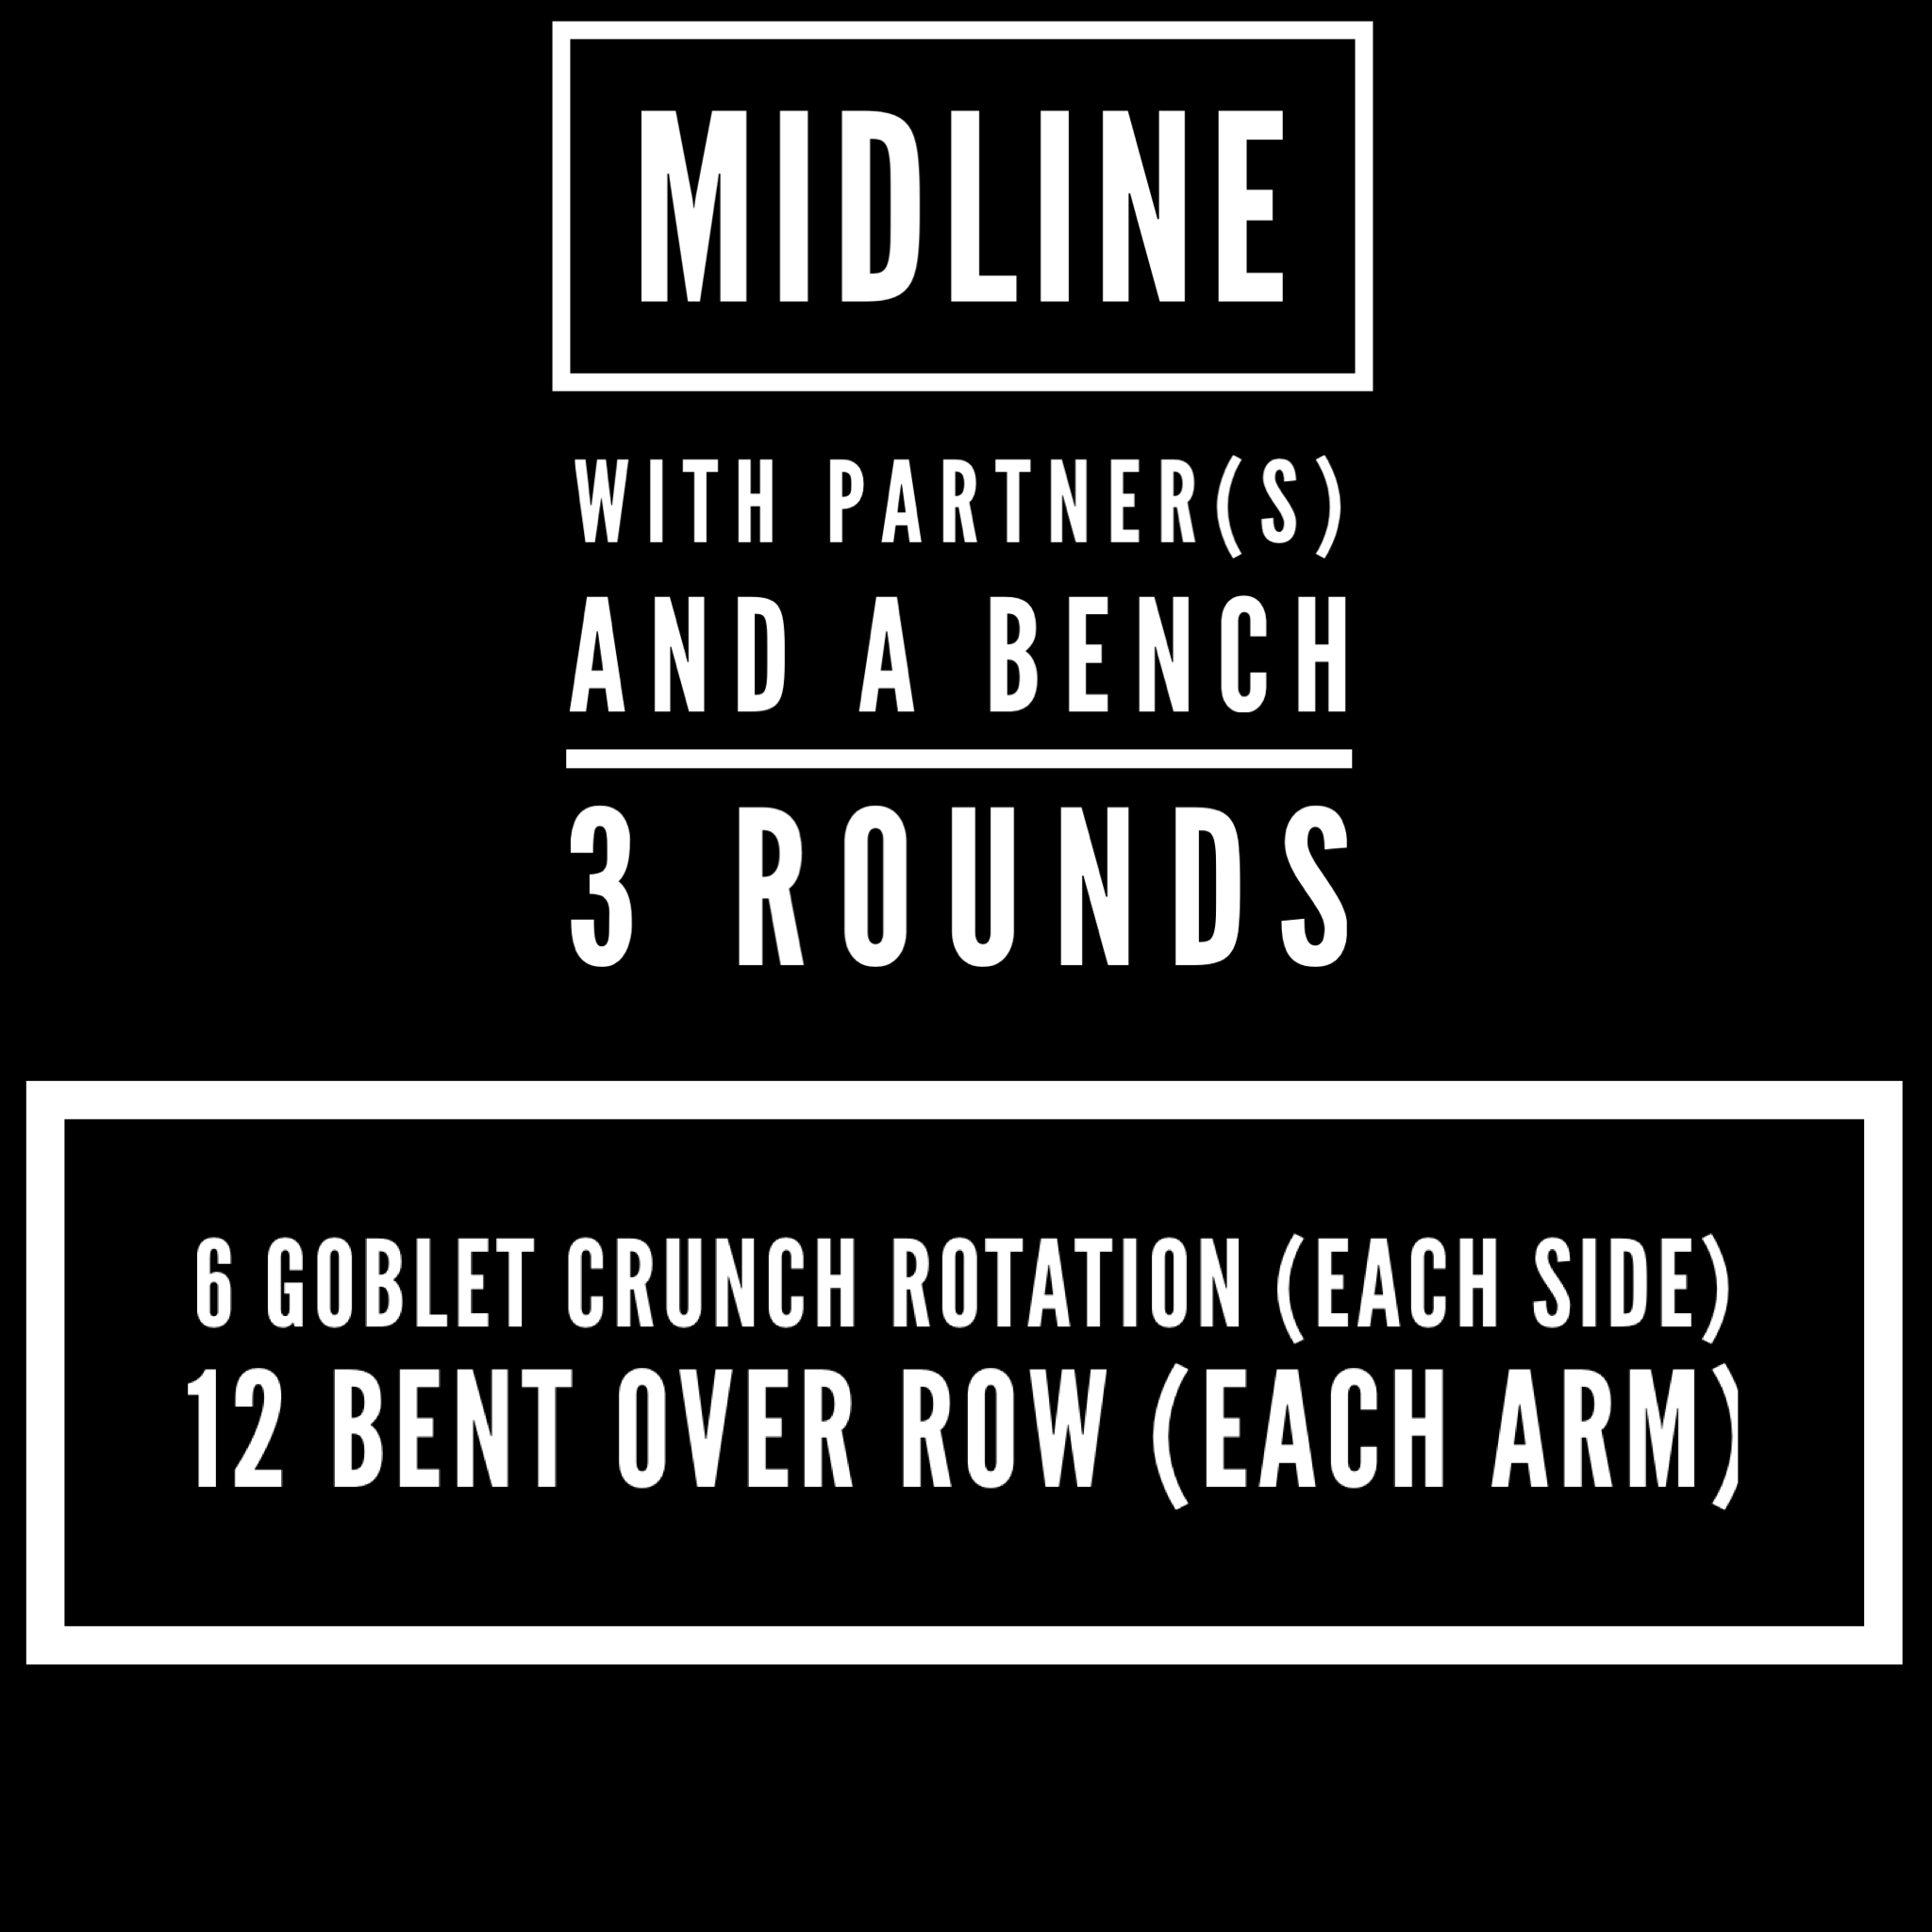 the crunch rotation is performed laying down on a bench with a kettlebell in hand just in front of the chest and feet locked underneath the bench. Rotate right, then left while holding the crunch position. Pace reps for a total hold of 20+ seconds  bent over row is performed with a kettlebell, one side at a time, rotation allowed for use of heavier weight.